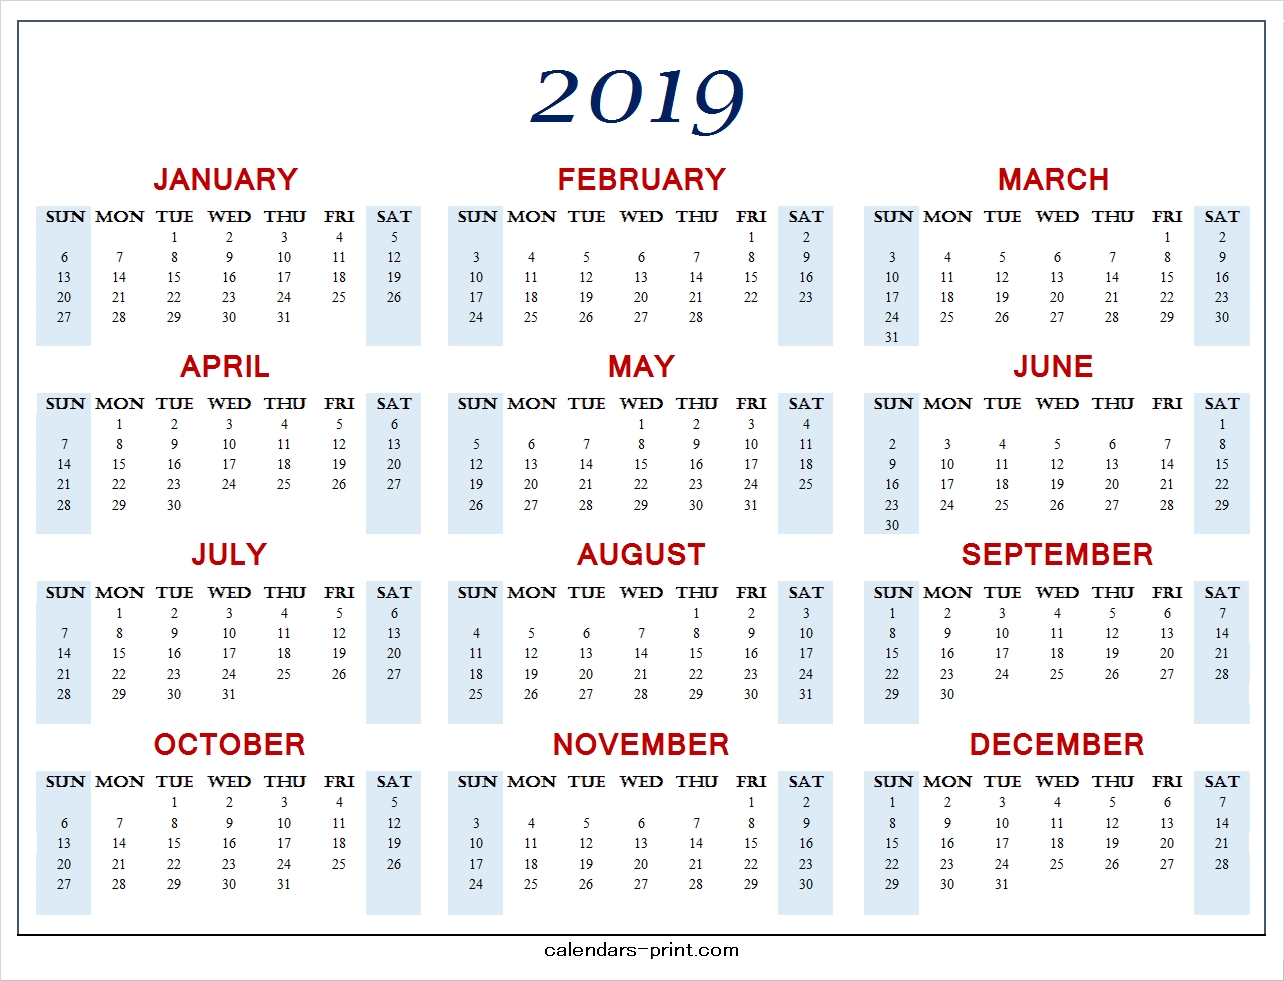 Calendar 2019 Template To Print Free | Download Blank Pdf Template 2019 Calendar You Can Edit